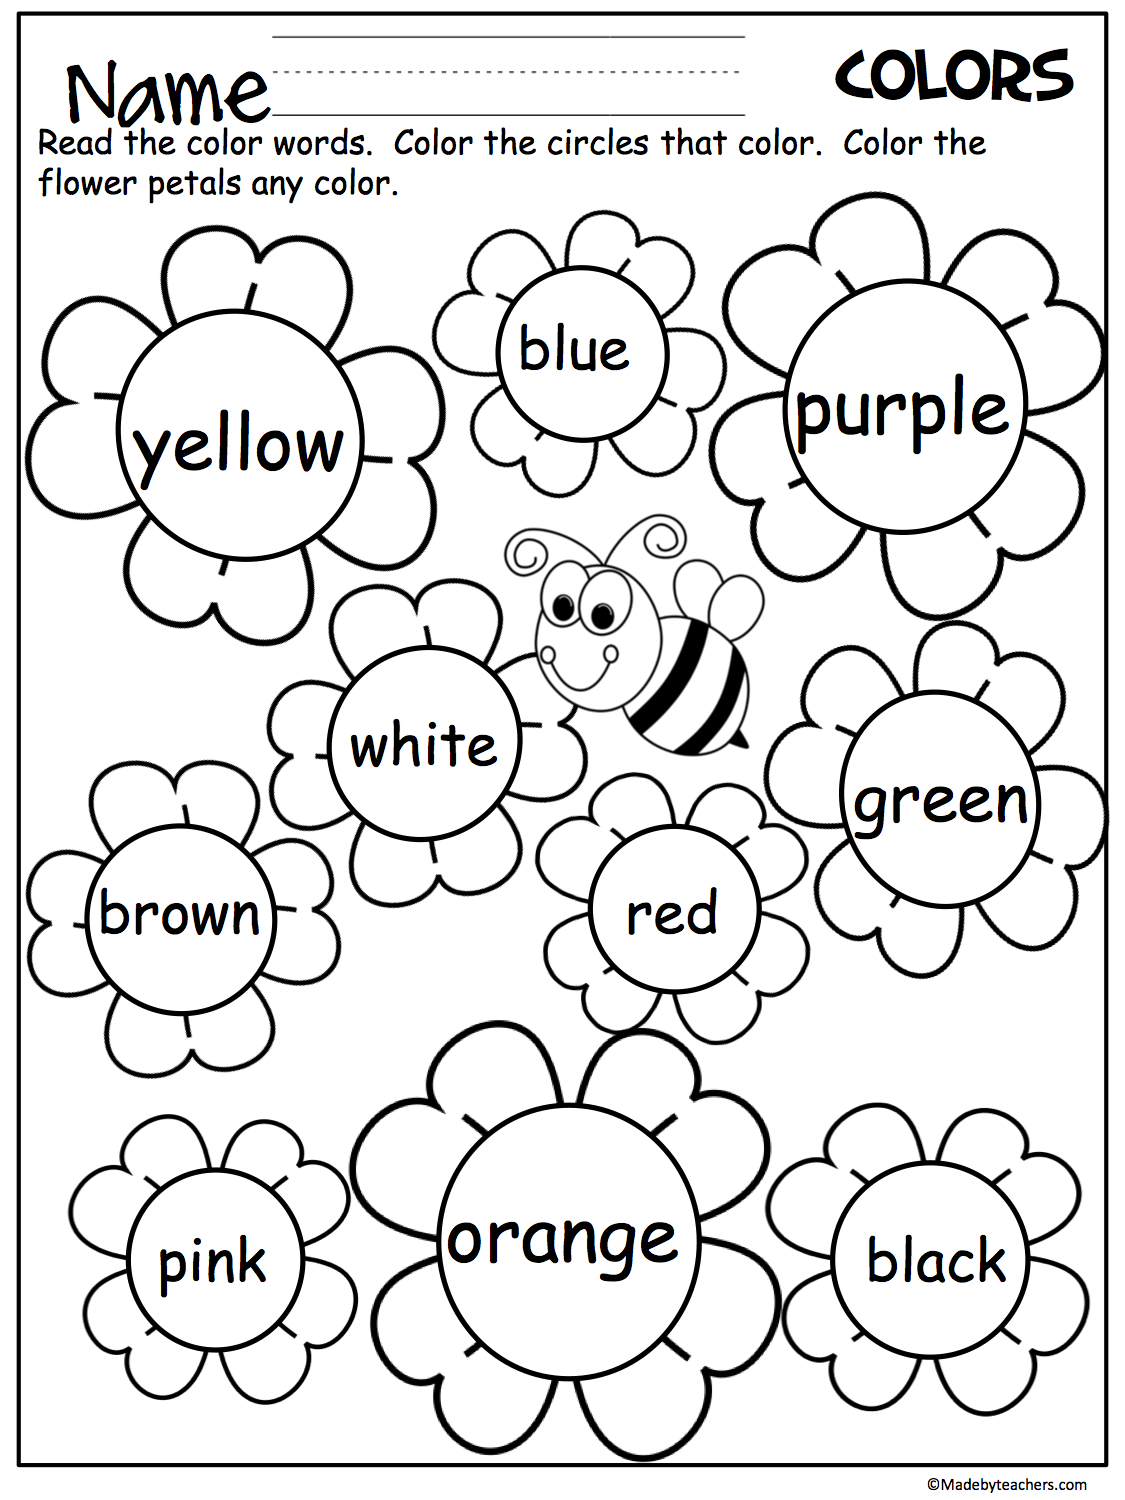 Colors Worksheets For Preschoolers Free Printables